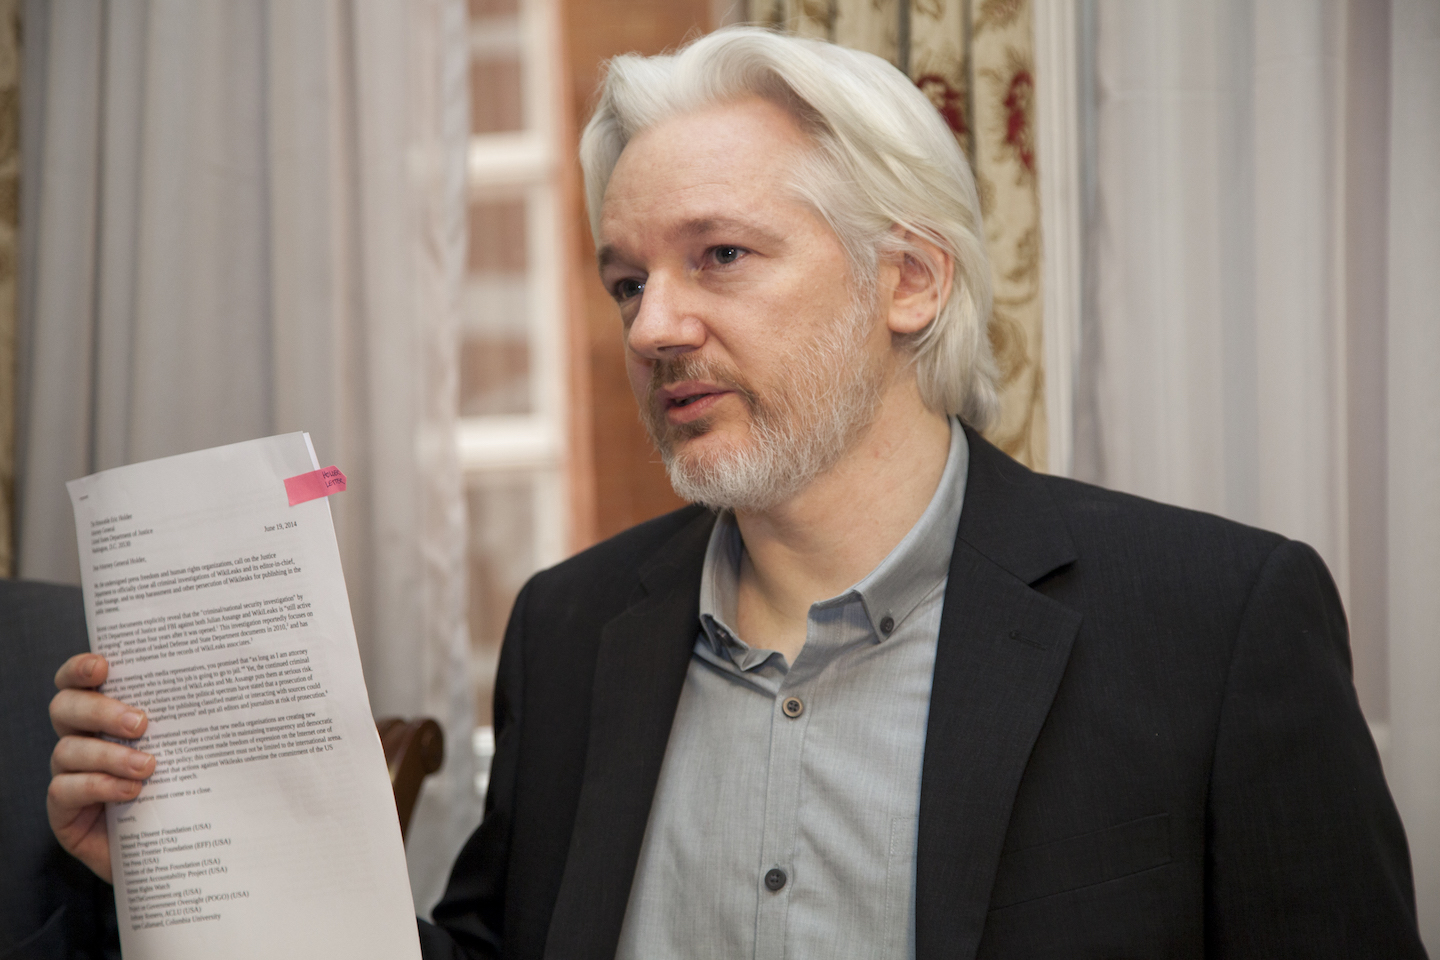 Image: Ecuador govt claims Assange was 'interfering' with the US election so they silenced him